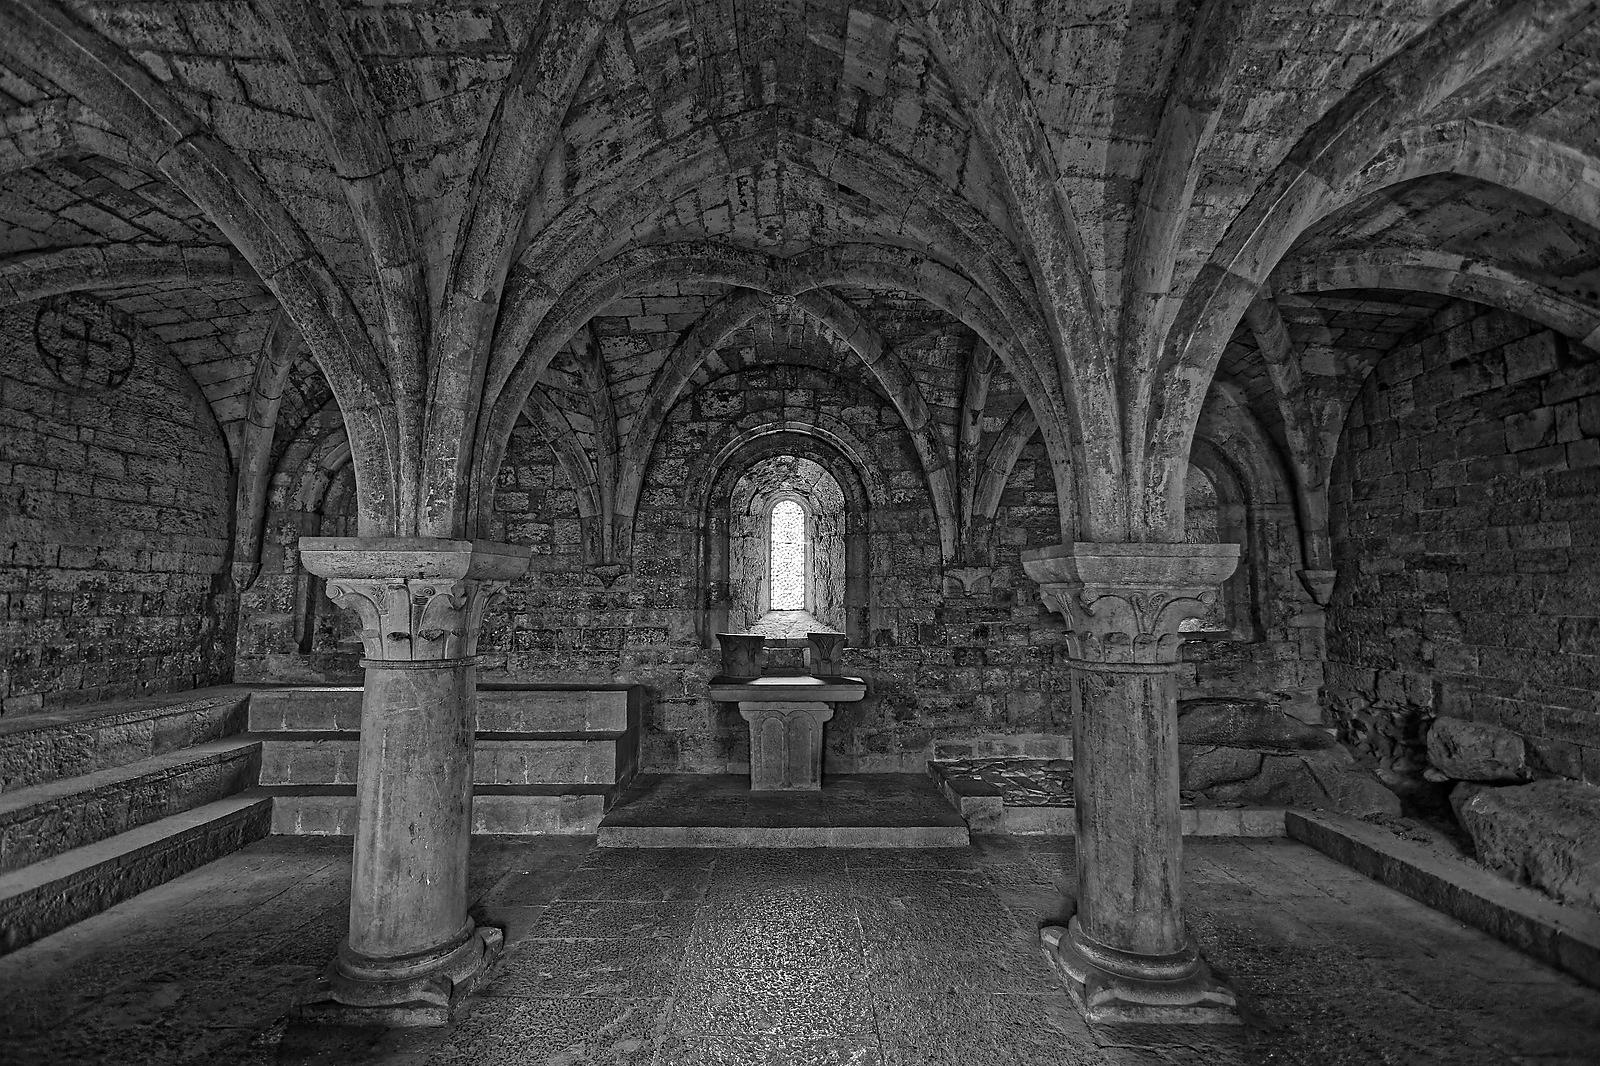 Chapter house in Thoronet abbey